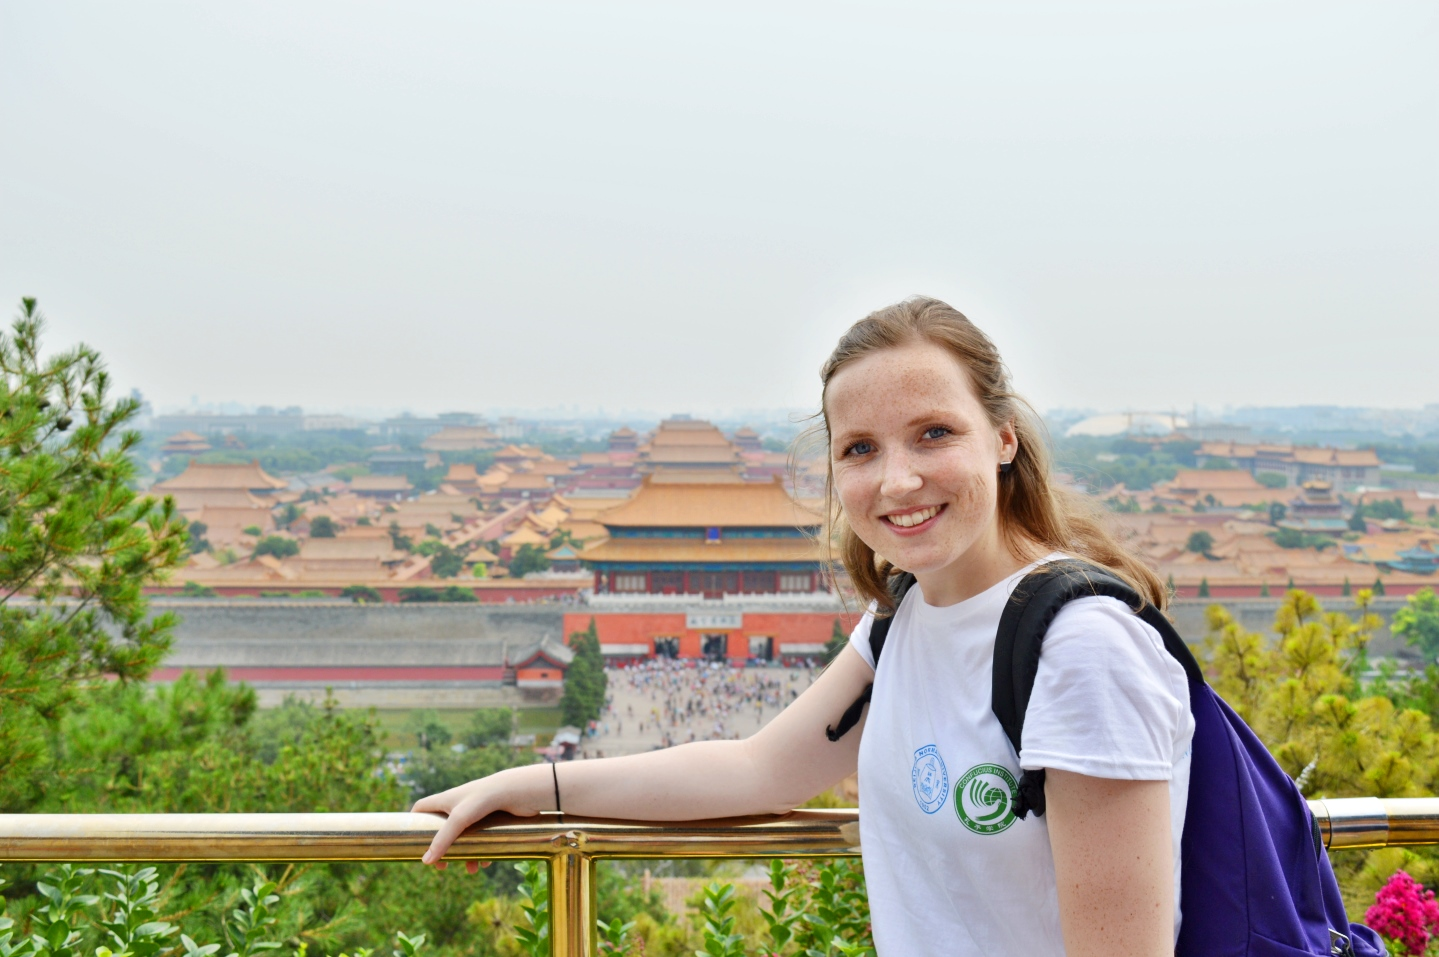 Me at the Forbidden City in Beijing.